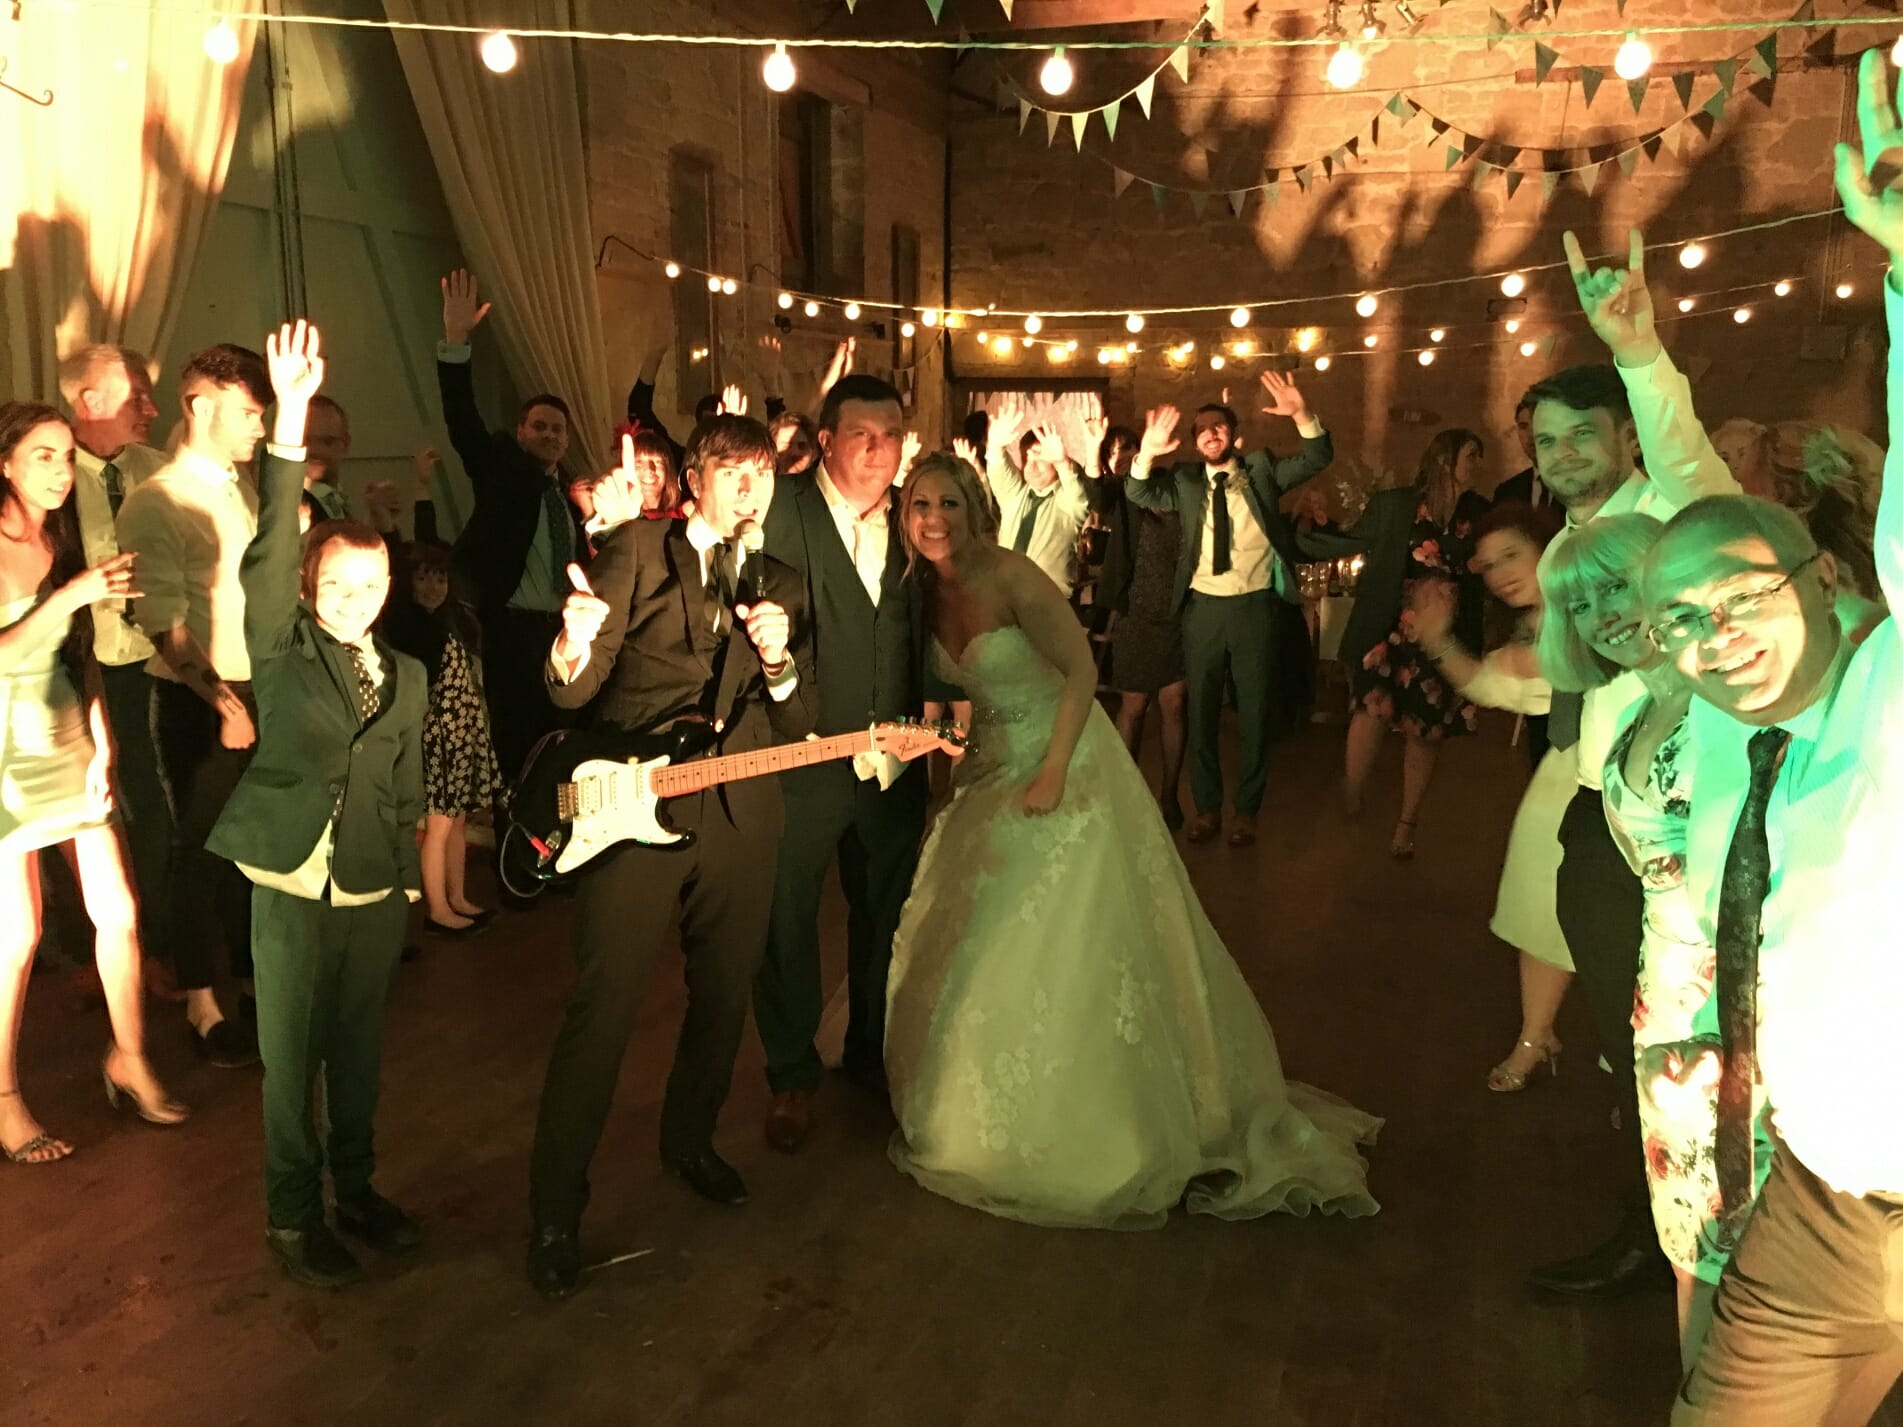 Philippa Kevin Wedding Ashleywood Farm Venue Wiltshire The Zoots Salisbury Band Party In